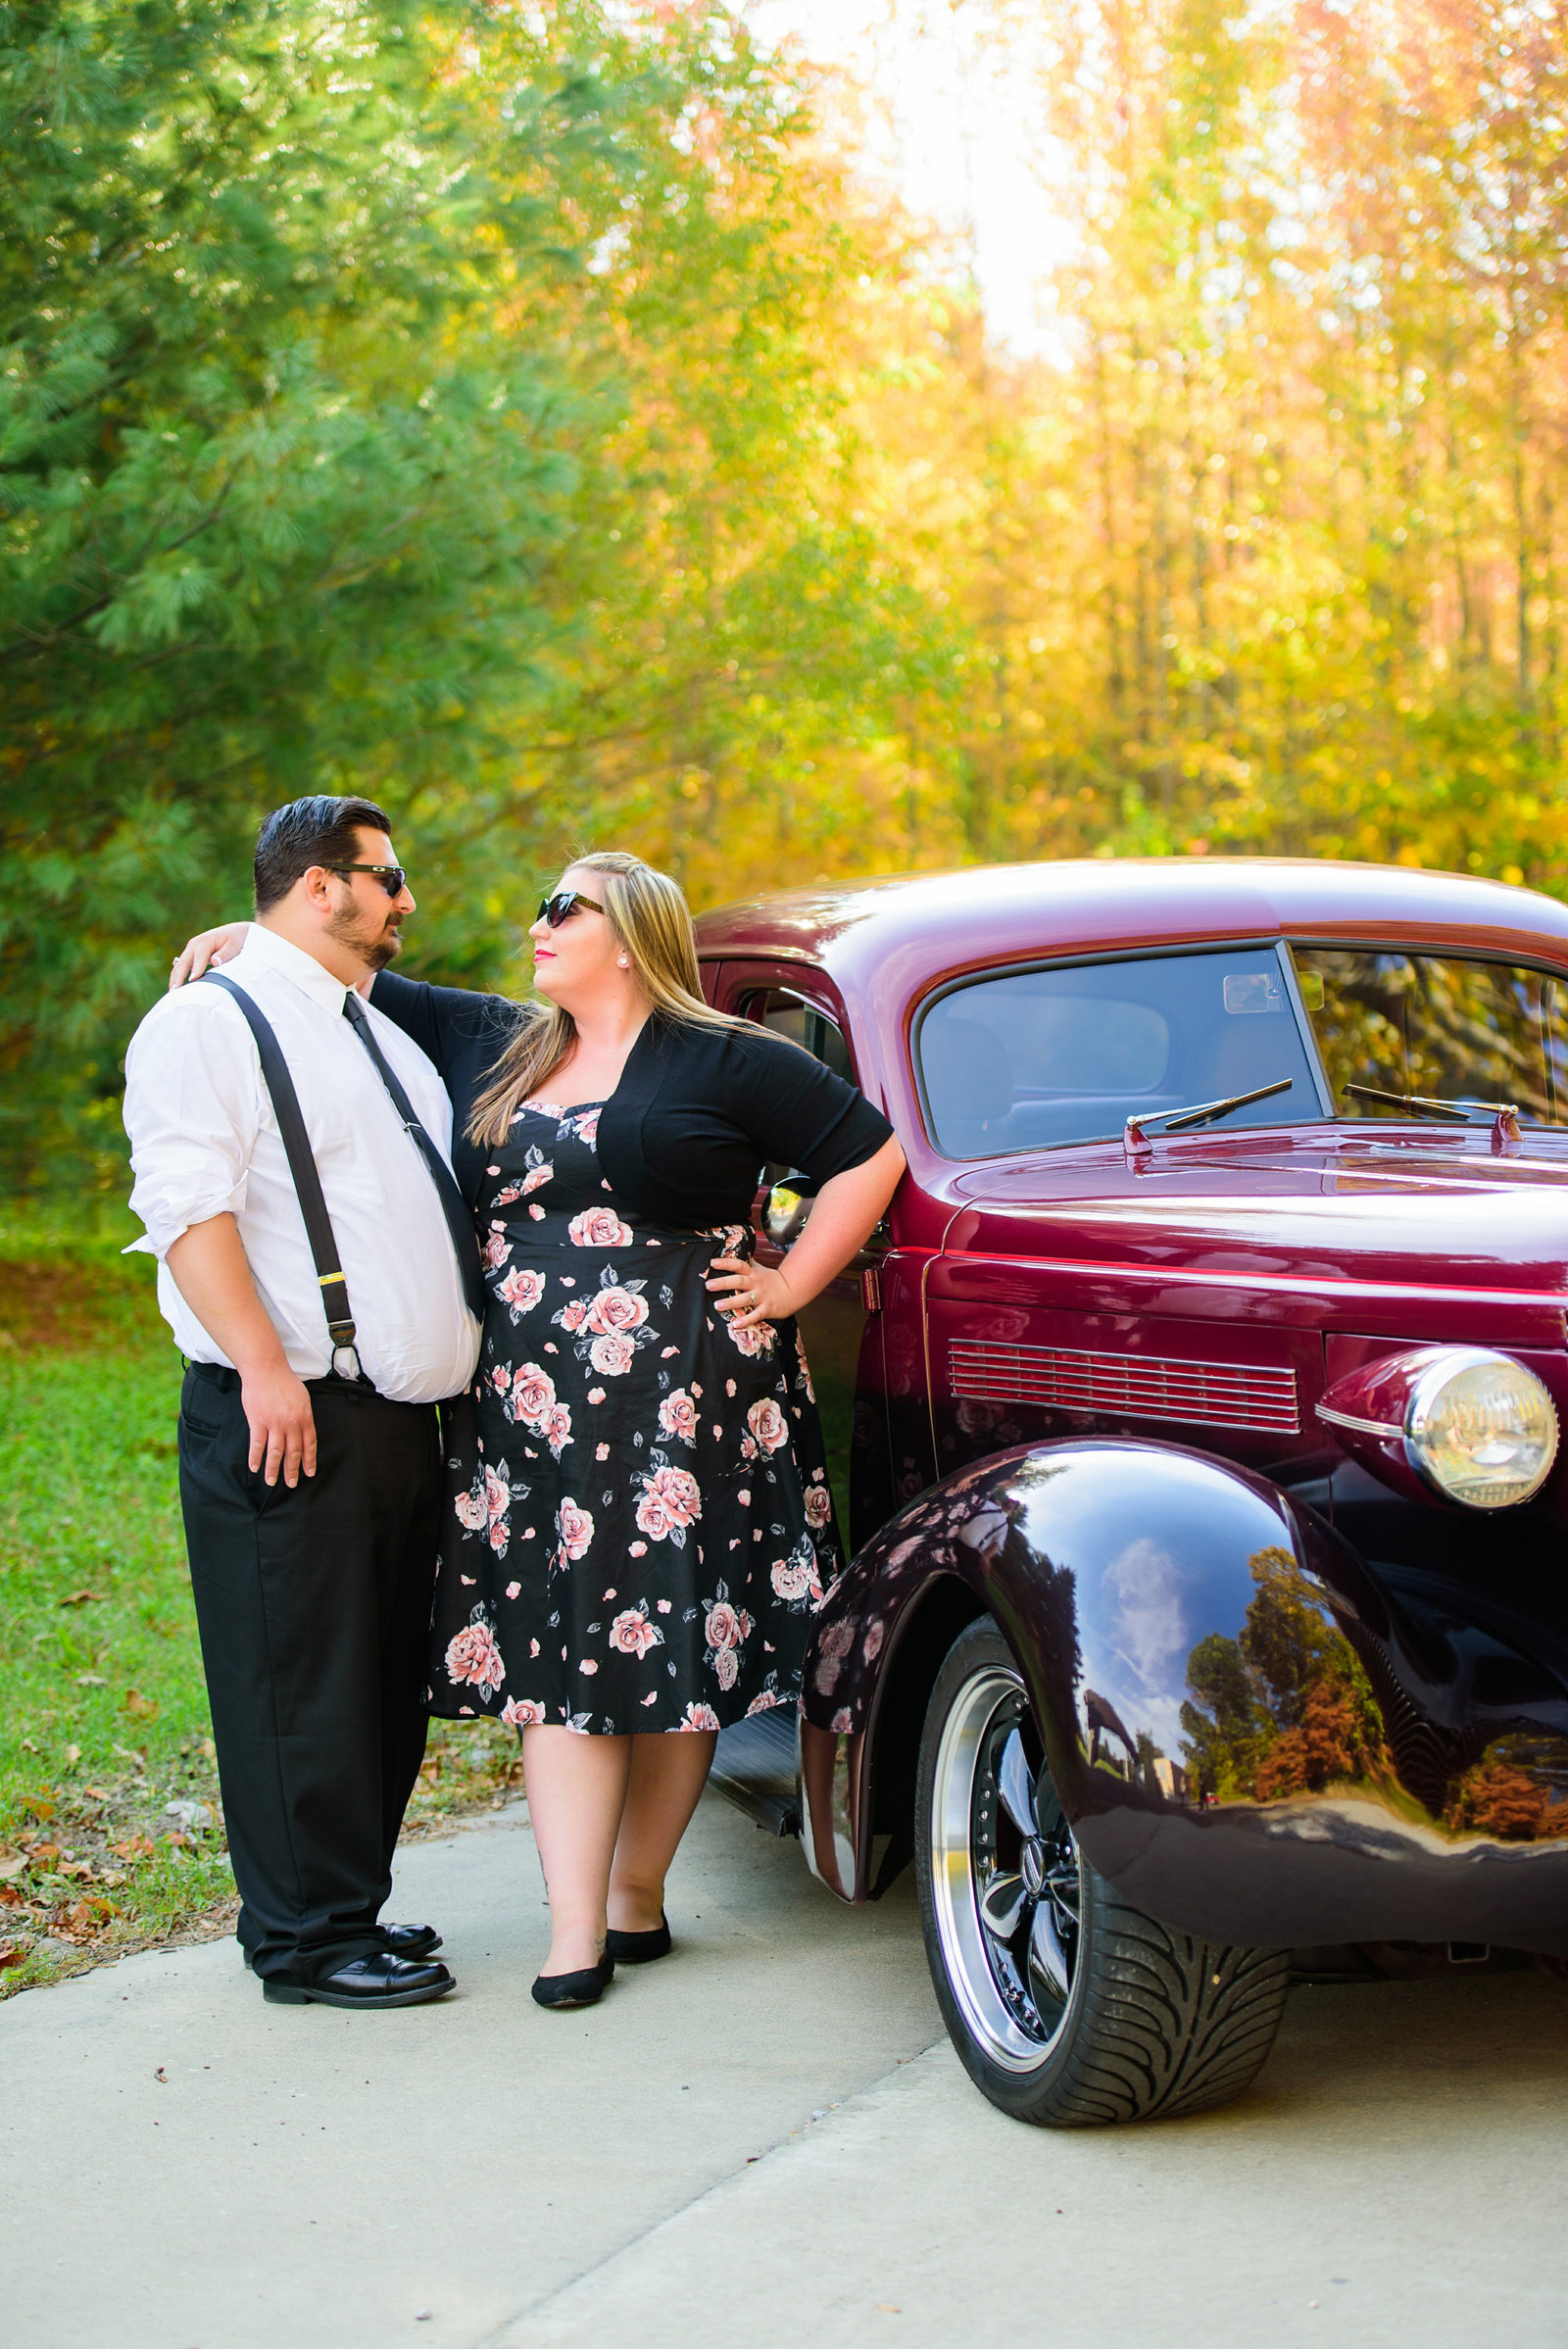 Retro_Pinup_Car_engagement_session_Nj002